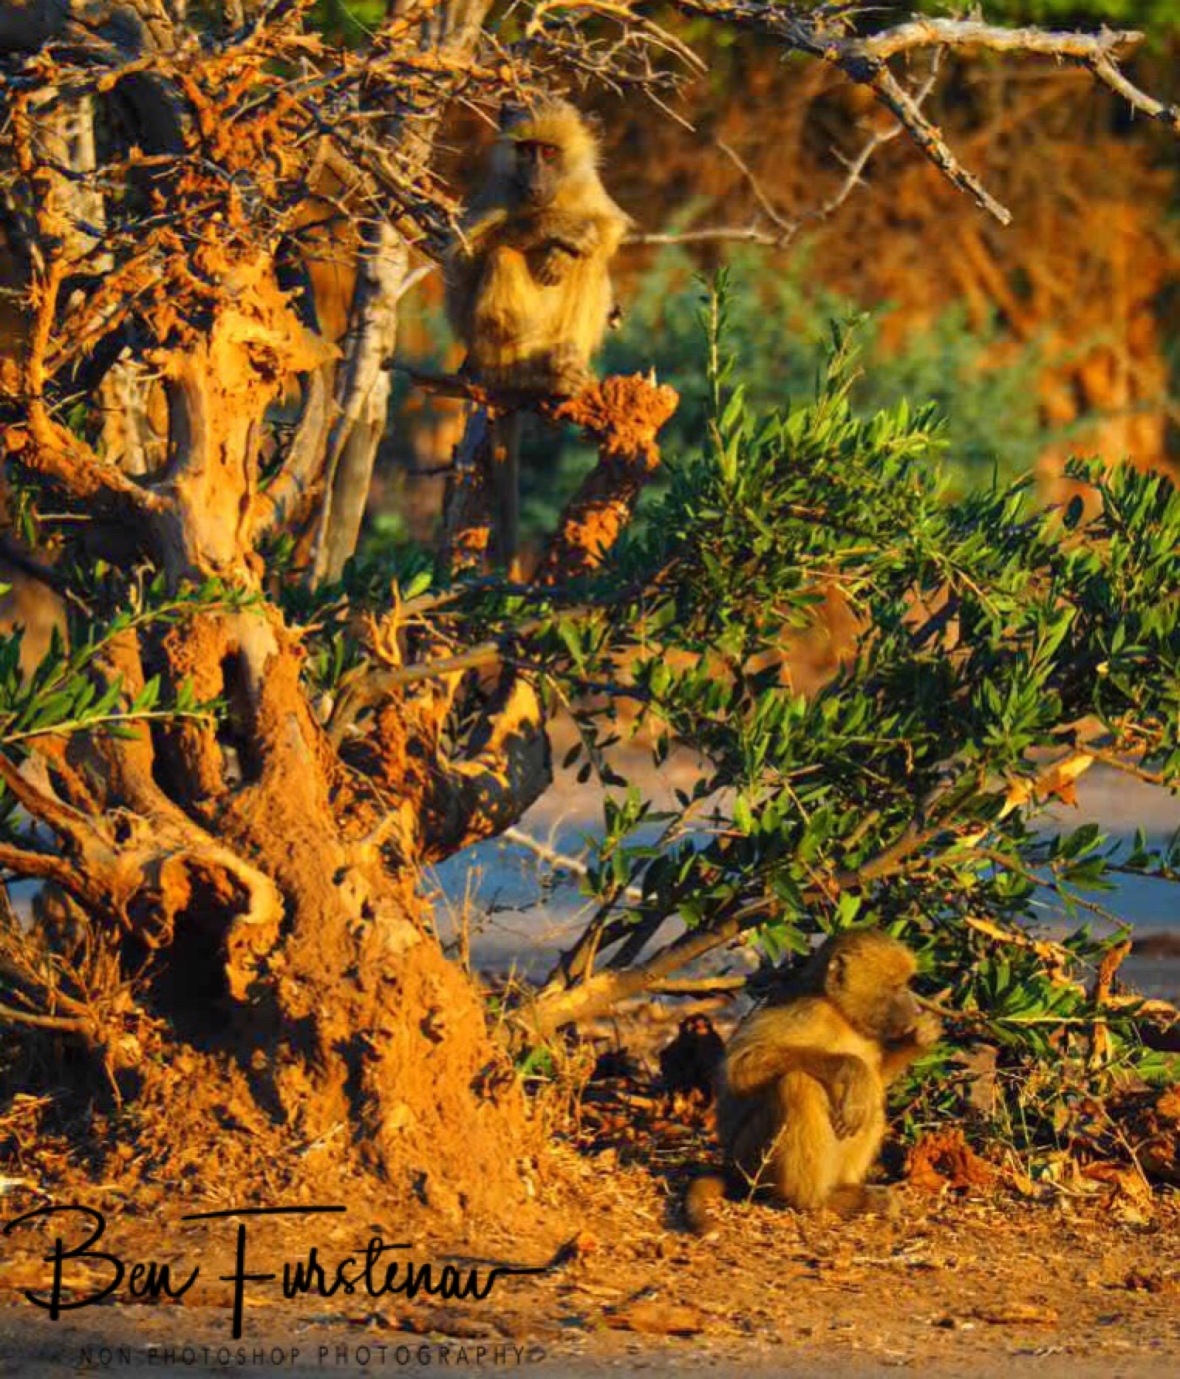 Always time for monkey business, Lower Zambezi National Park, Zambia